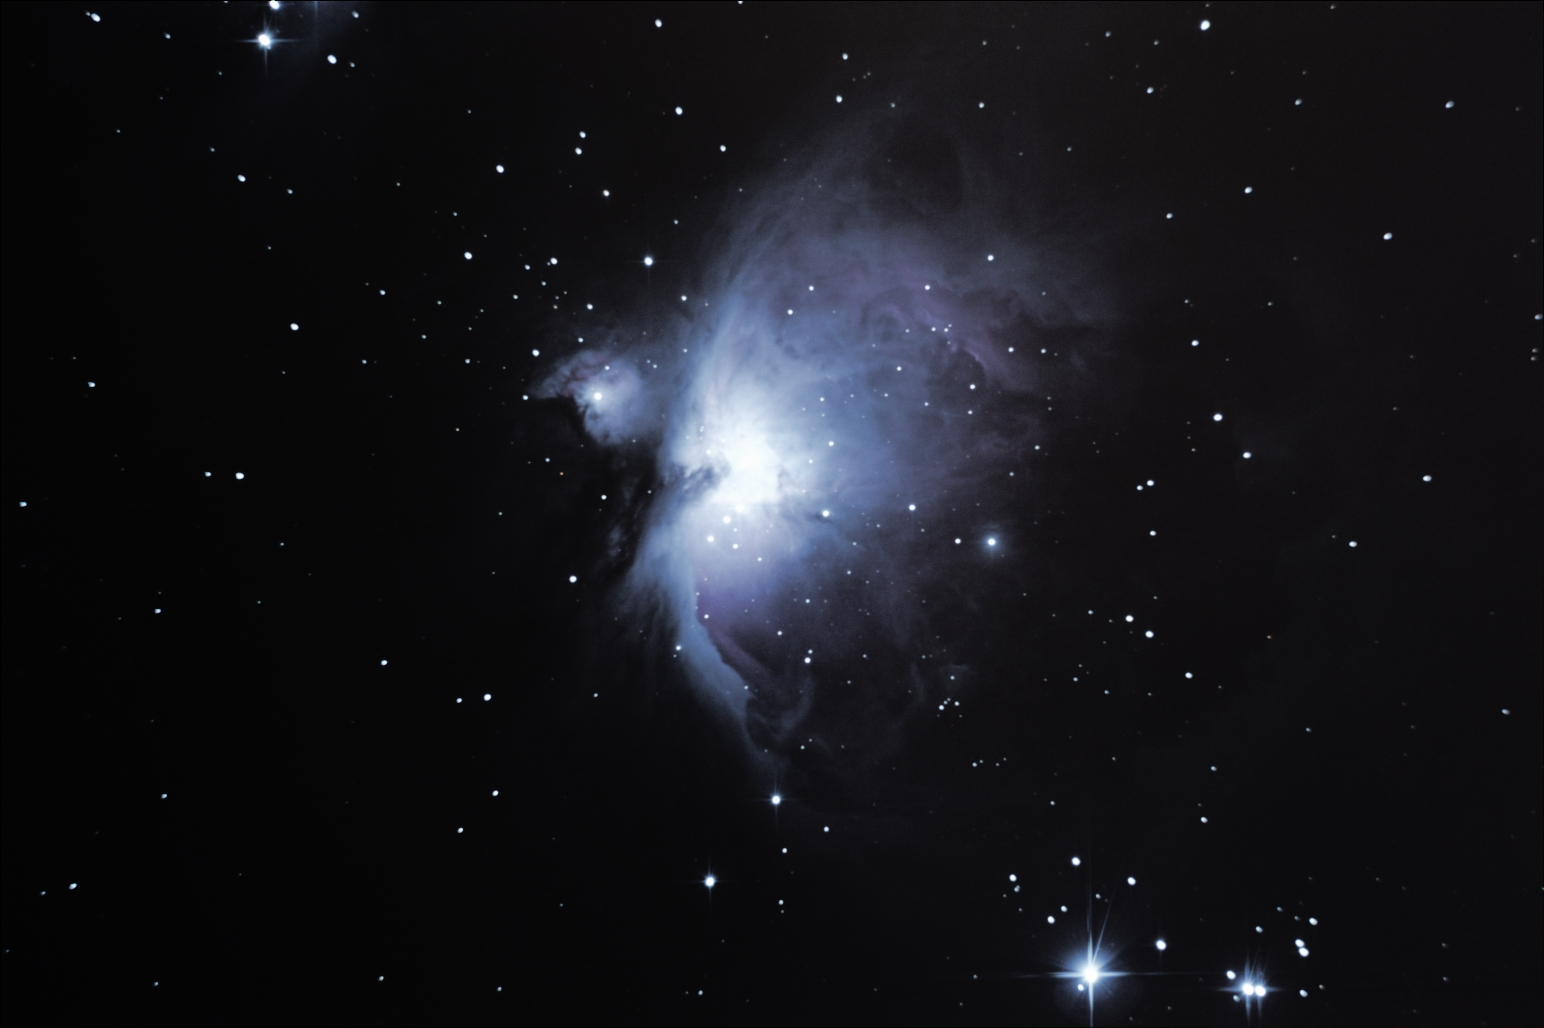 M42 M43 Great Orion Nebula, 12th Dec 2012